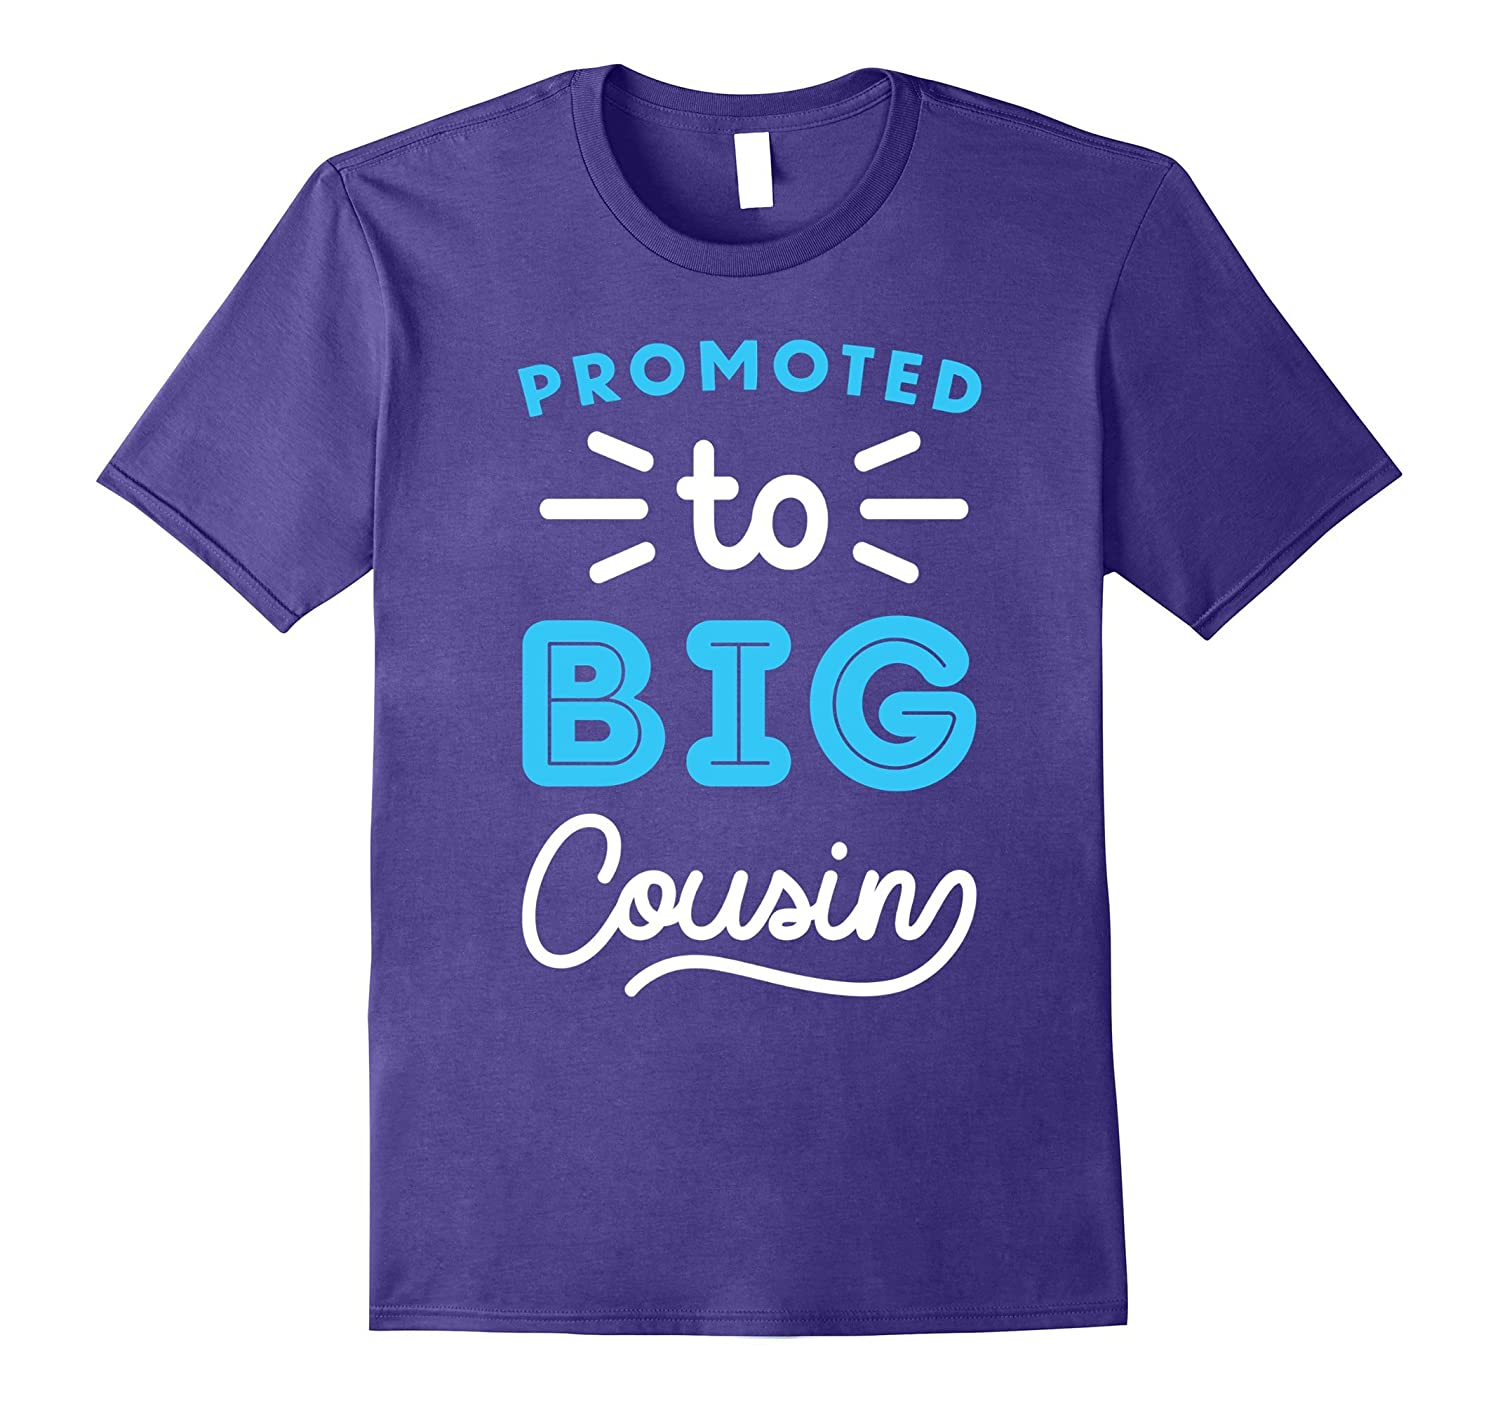 Promoted To Big Cousin Shirt Cousin Shirts For Kids Blue-Art